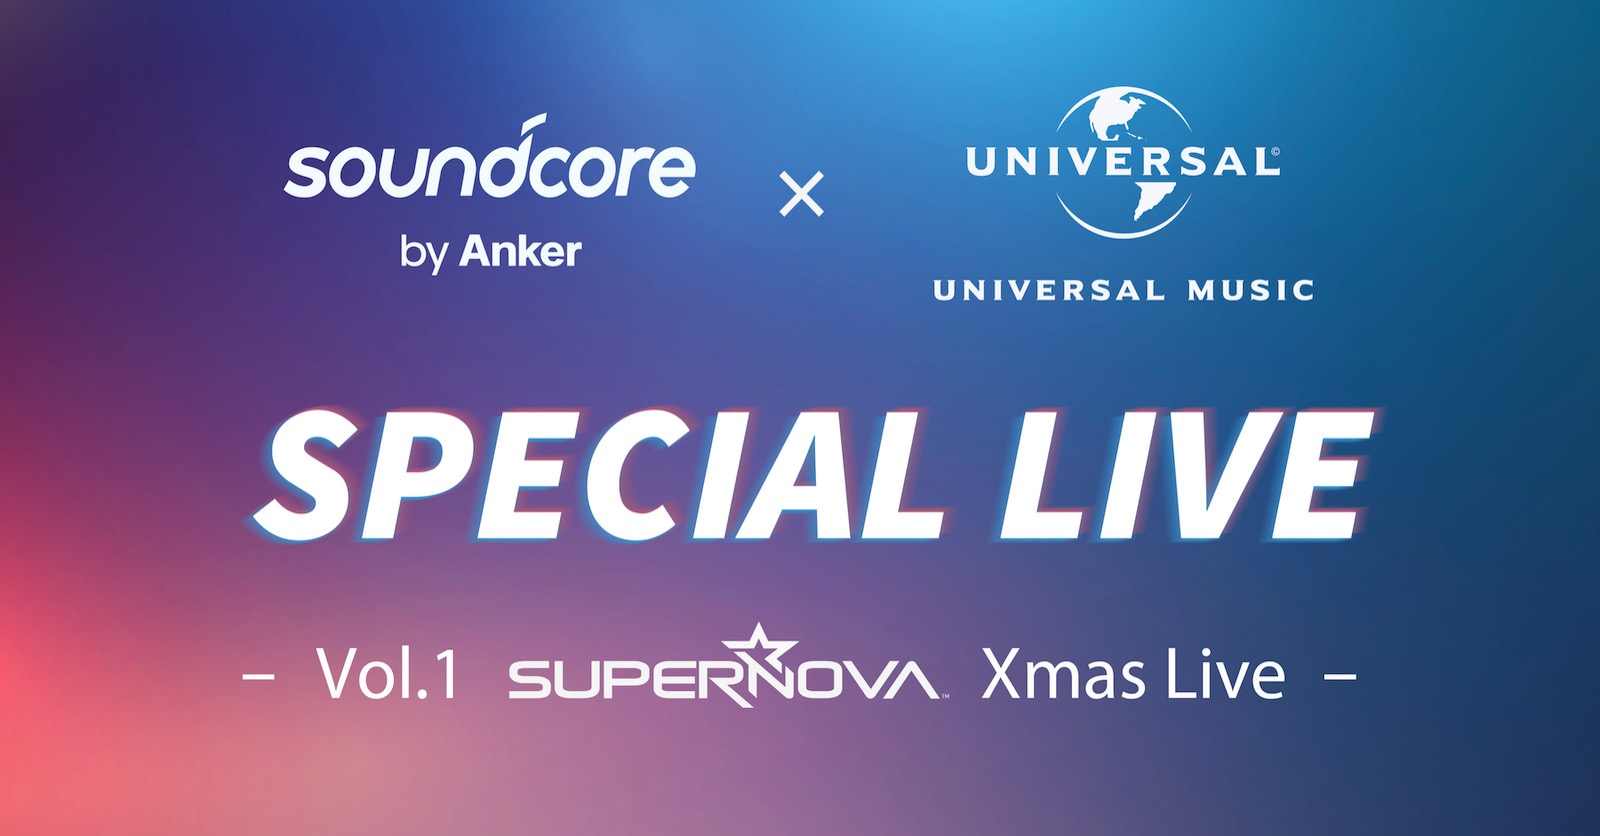 Anker and Universal Music